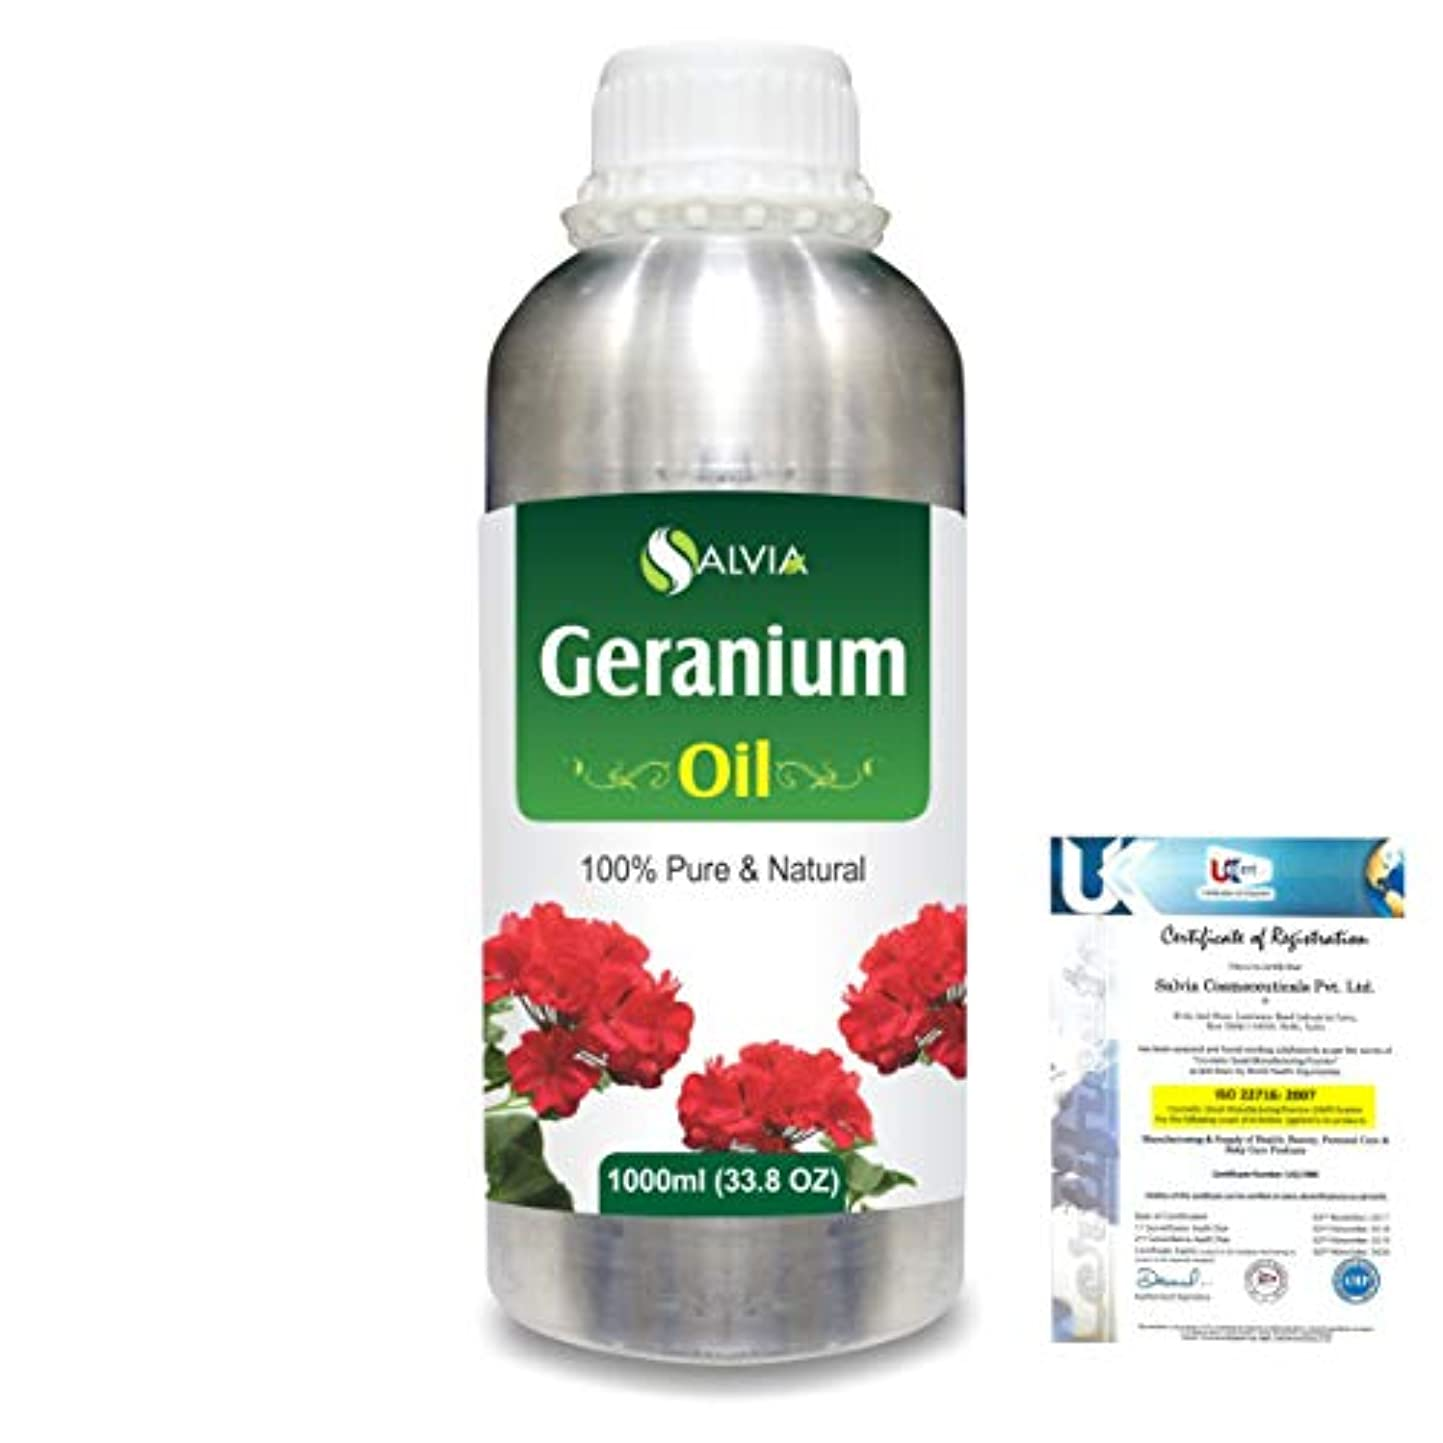 カートオプショナルポスターGeranium (Pelargonium Geranium) 100% Natural Pure Essential Oil 1000ml/33.8fl.oz.